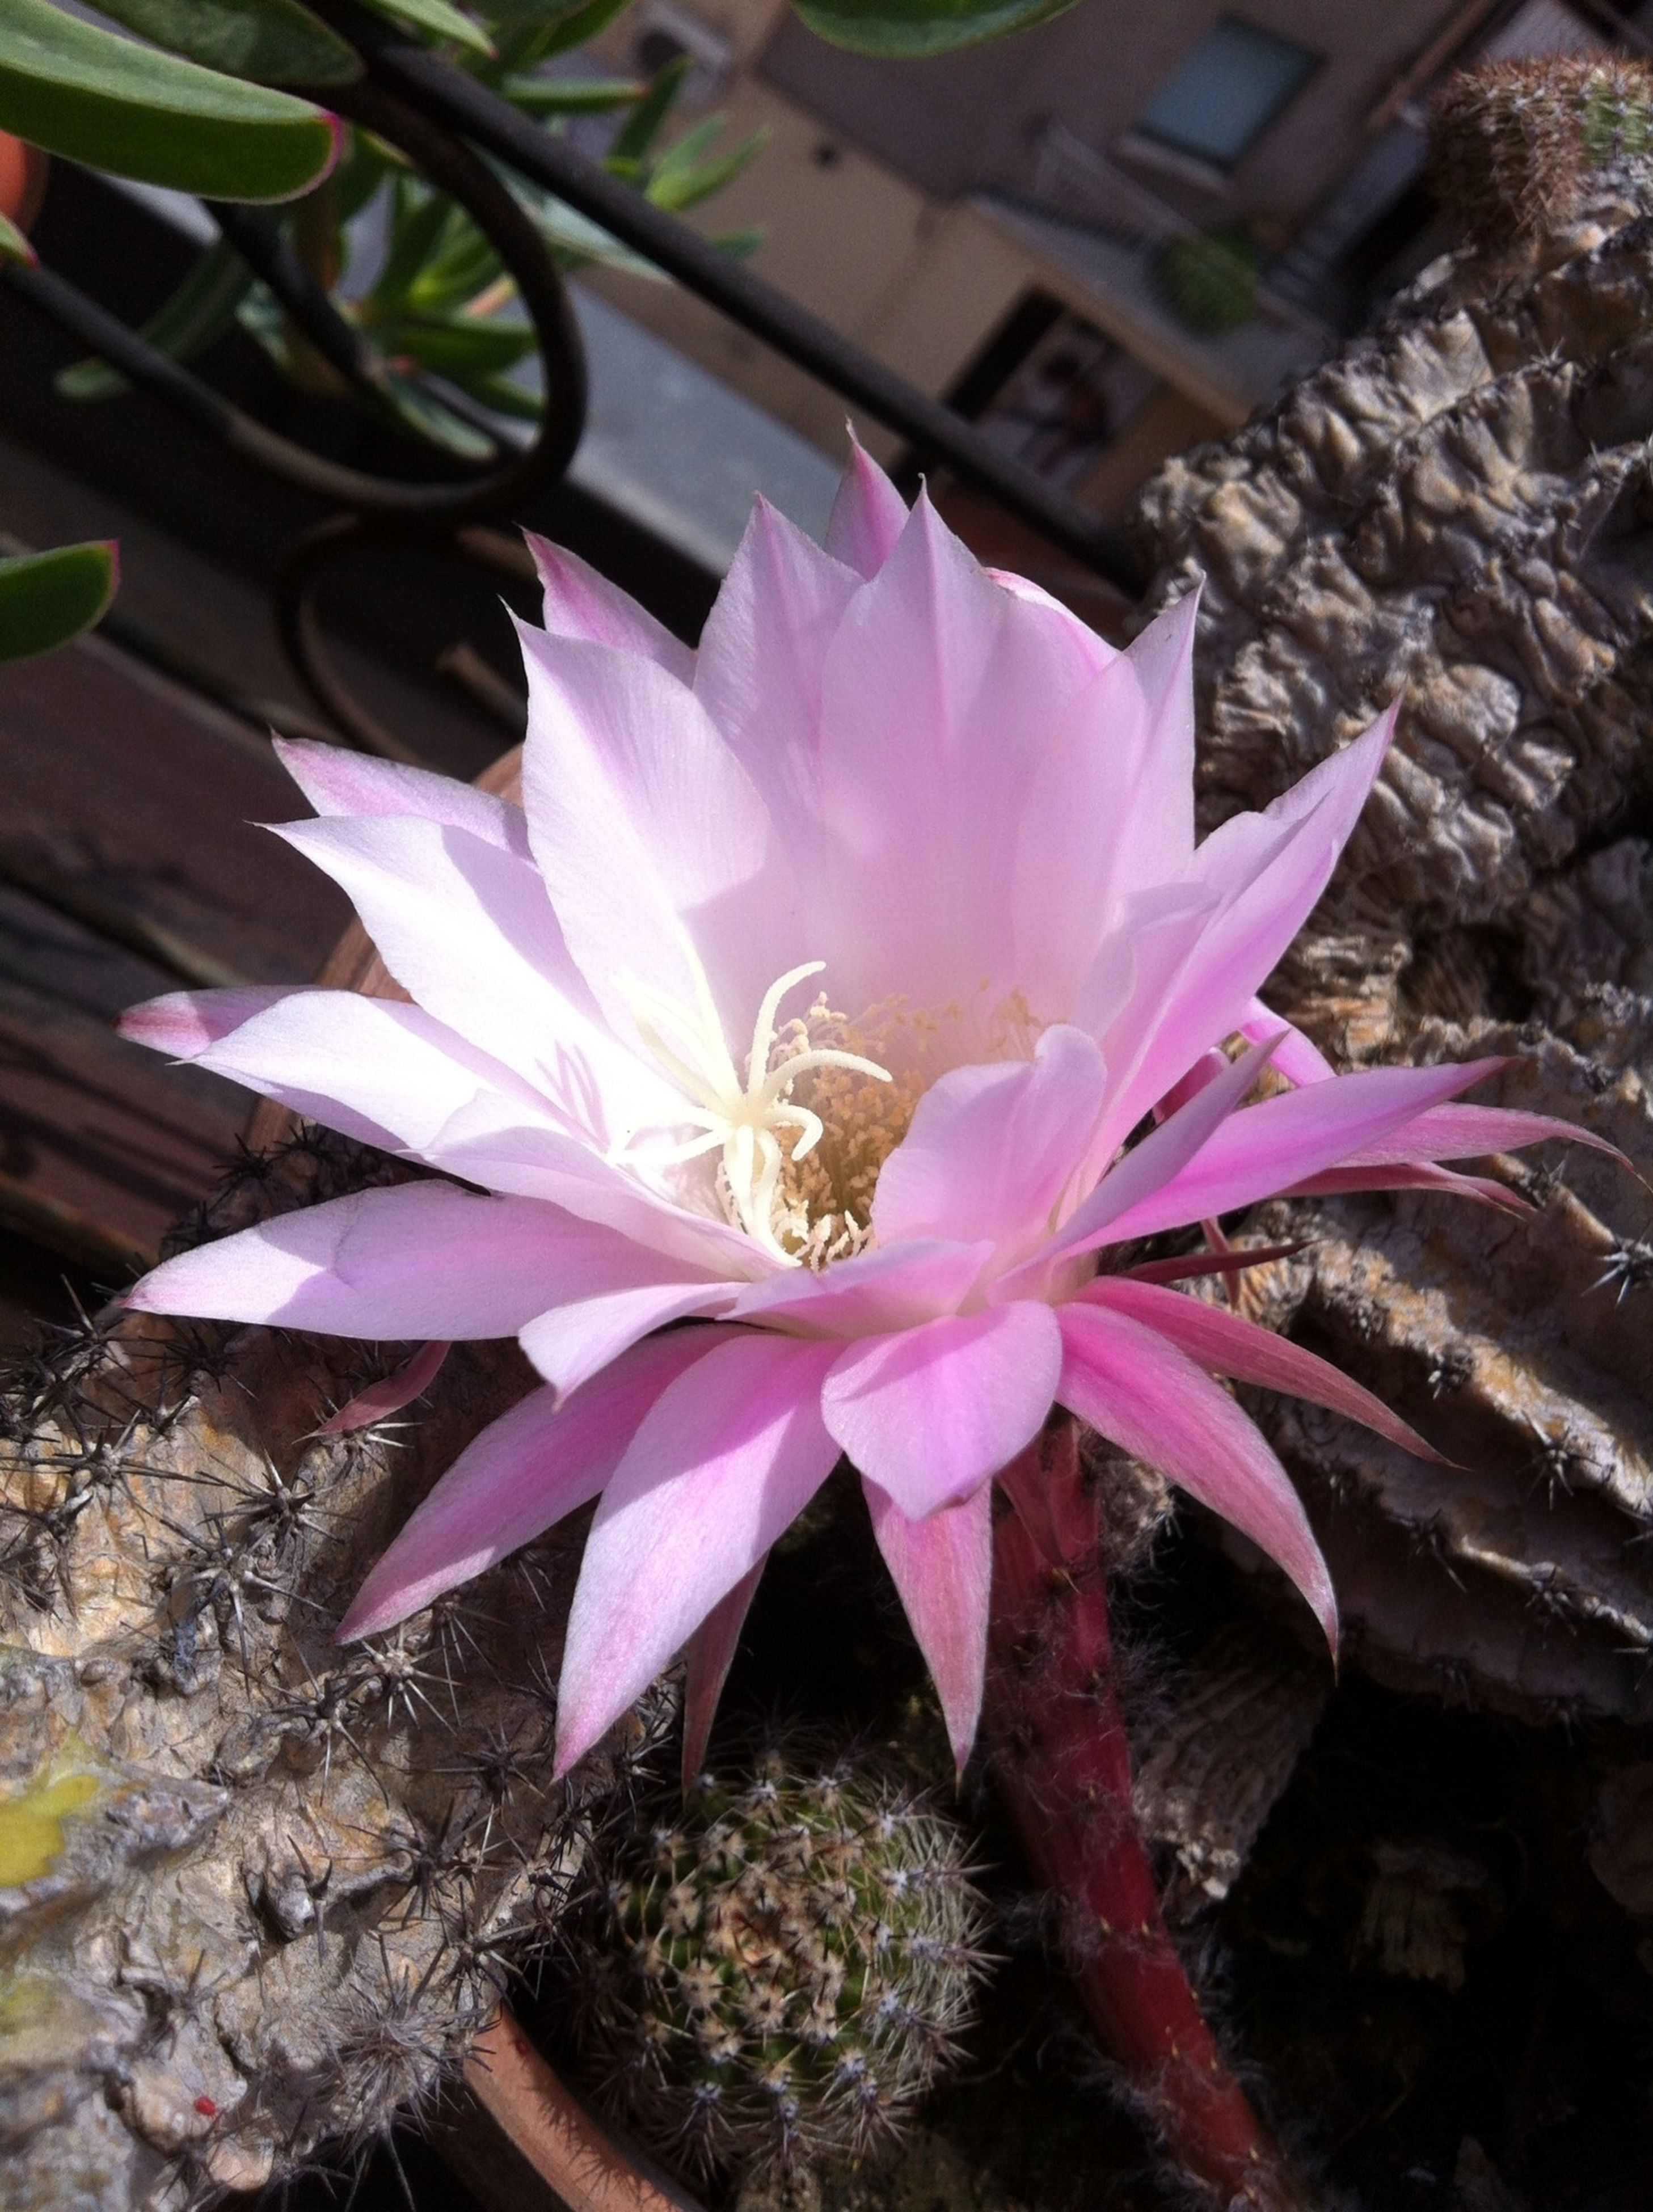 flower, petal, fragility, freshness, flower head, pink color, growth, single flower, beauty in nature, close-up, high angle view, leaf, nature, blooming, purple, plant, pollen, water lily, in bloom, stamen